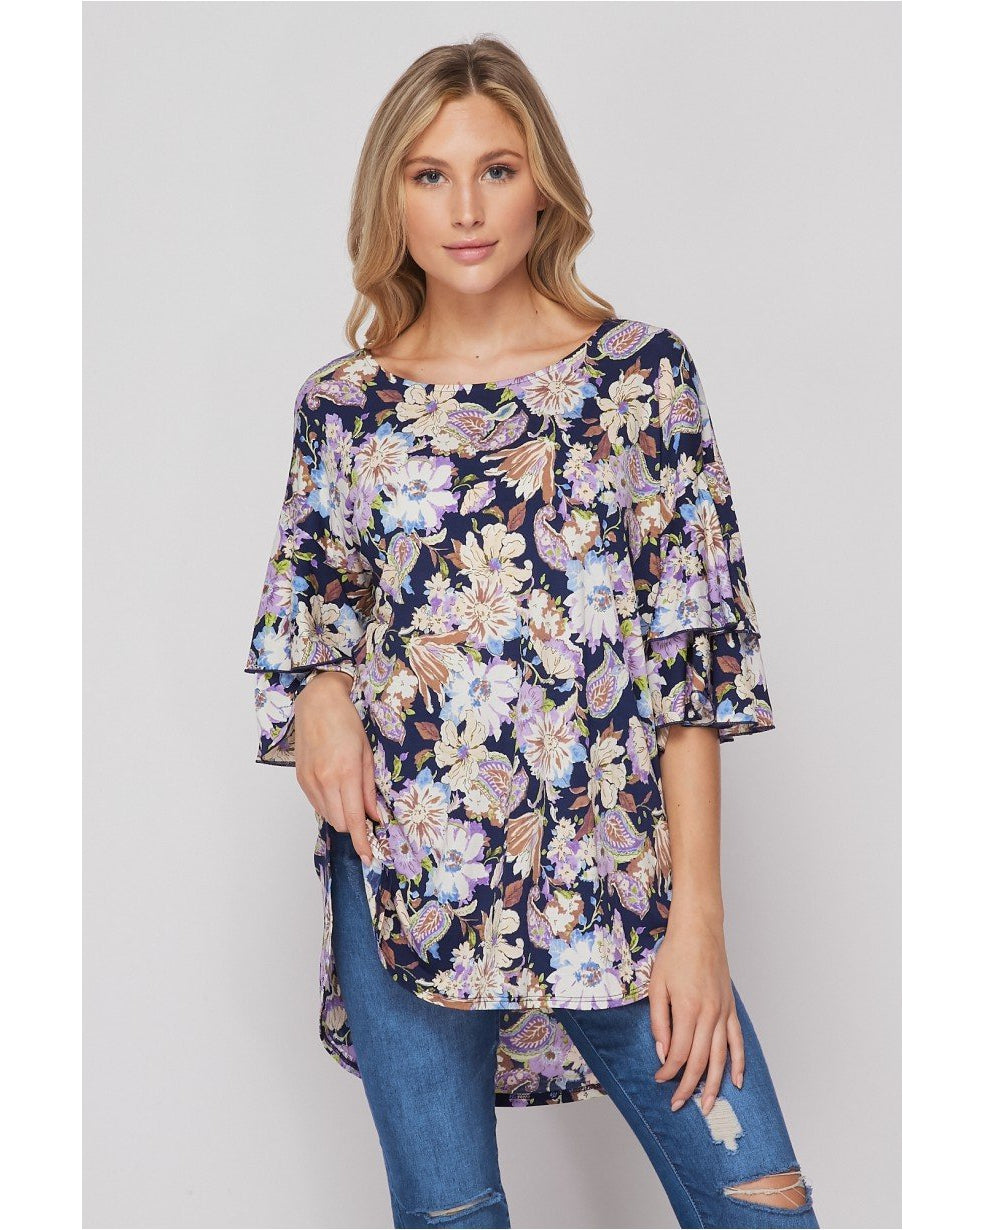 New Arrival! Flower Garden Double Ruffle Sleeve Floral Print Top by HoneyMe